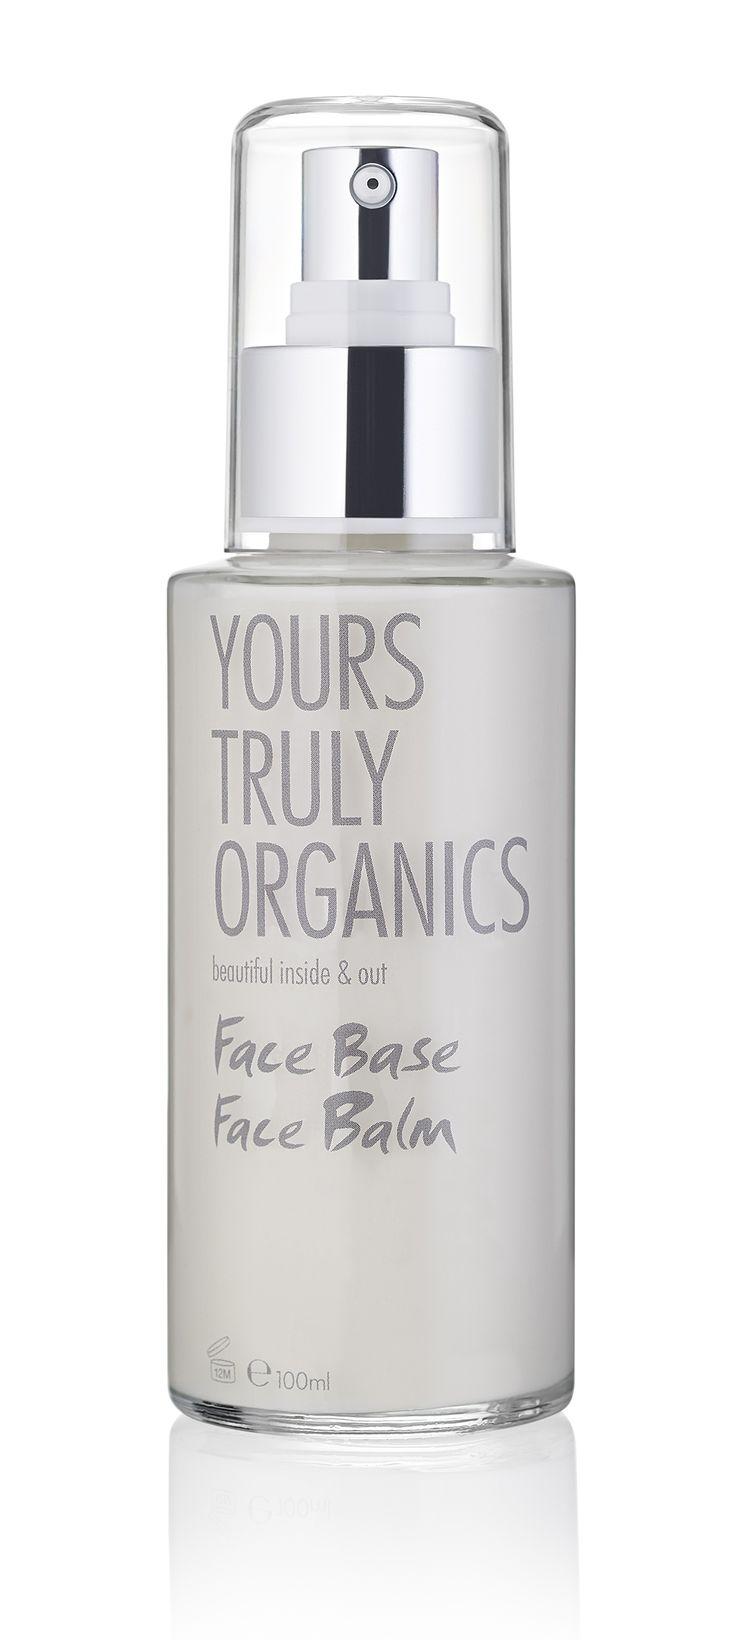 The perfect organic moisturiser for oily skin. Great under makeup due to mattifying qualities. Visit our website to order today!